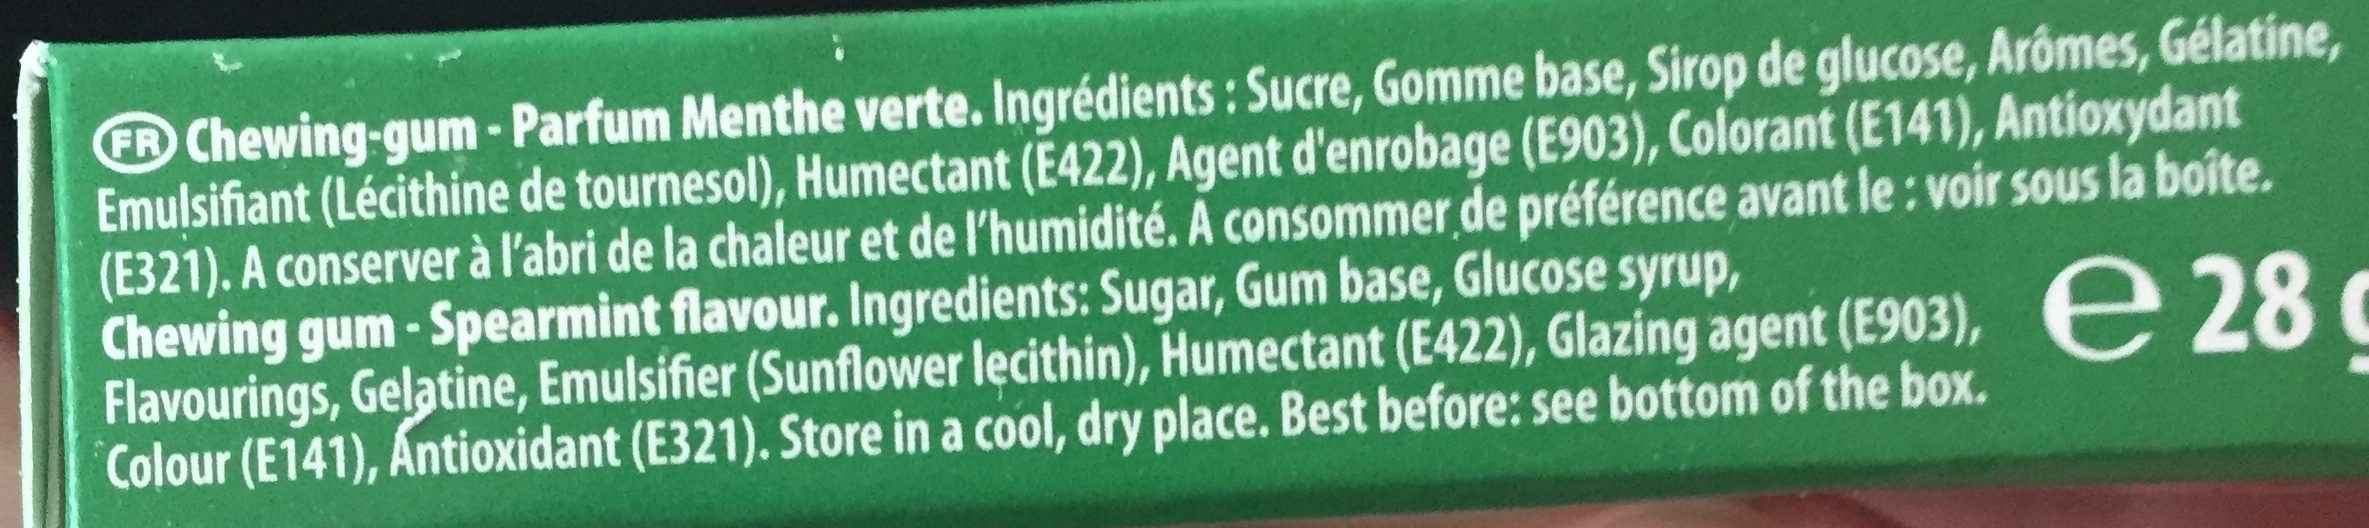 Hollywood classic menthe verte - Ingredients